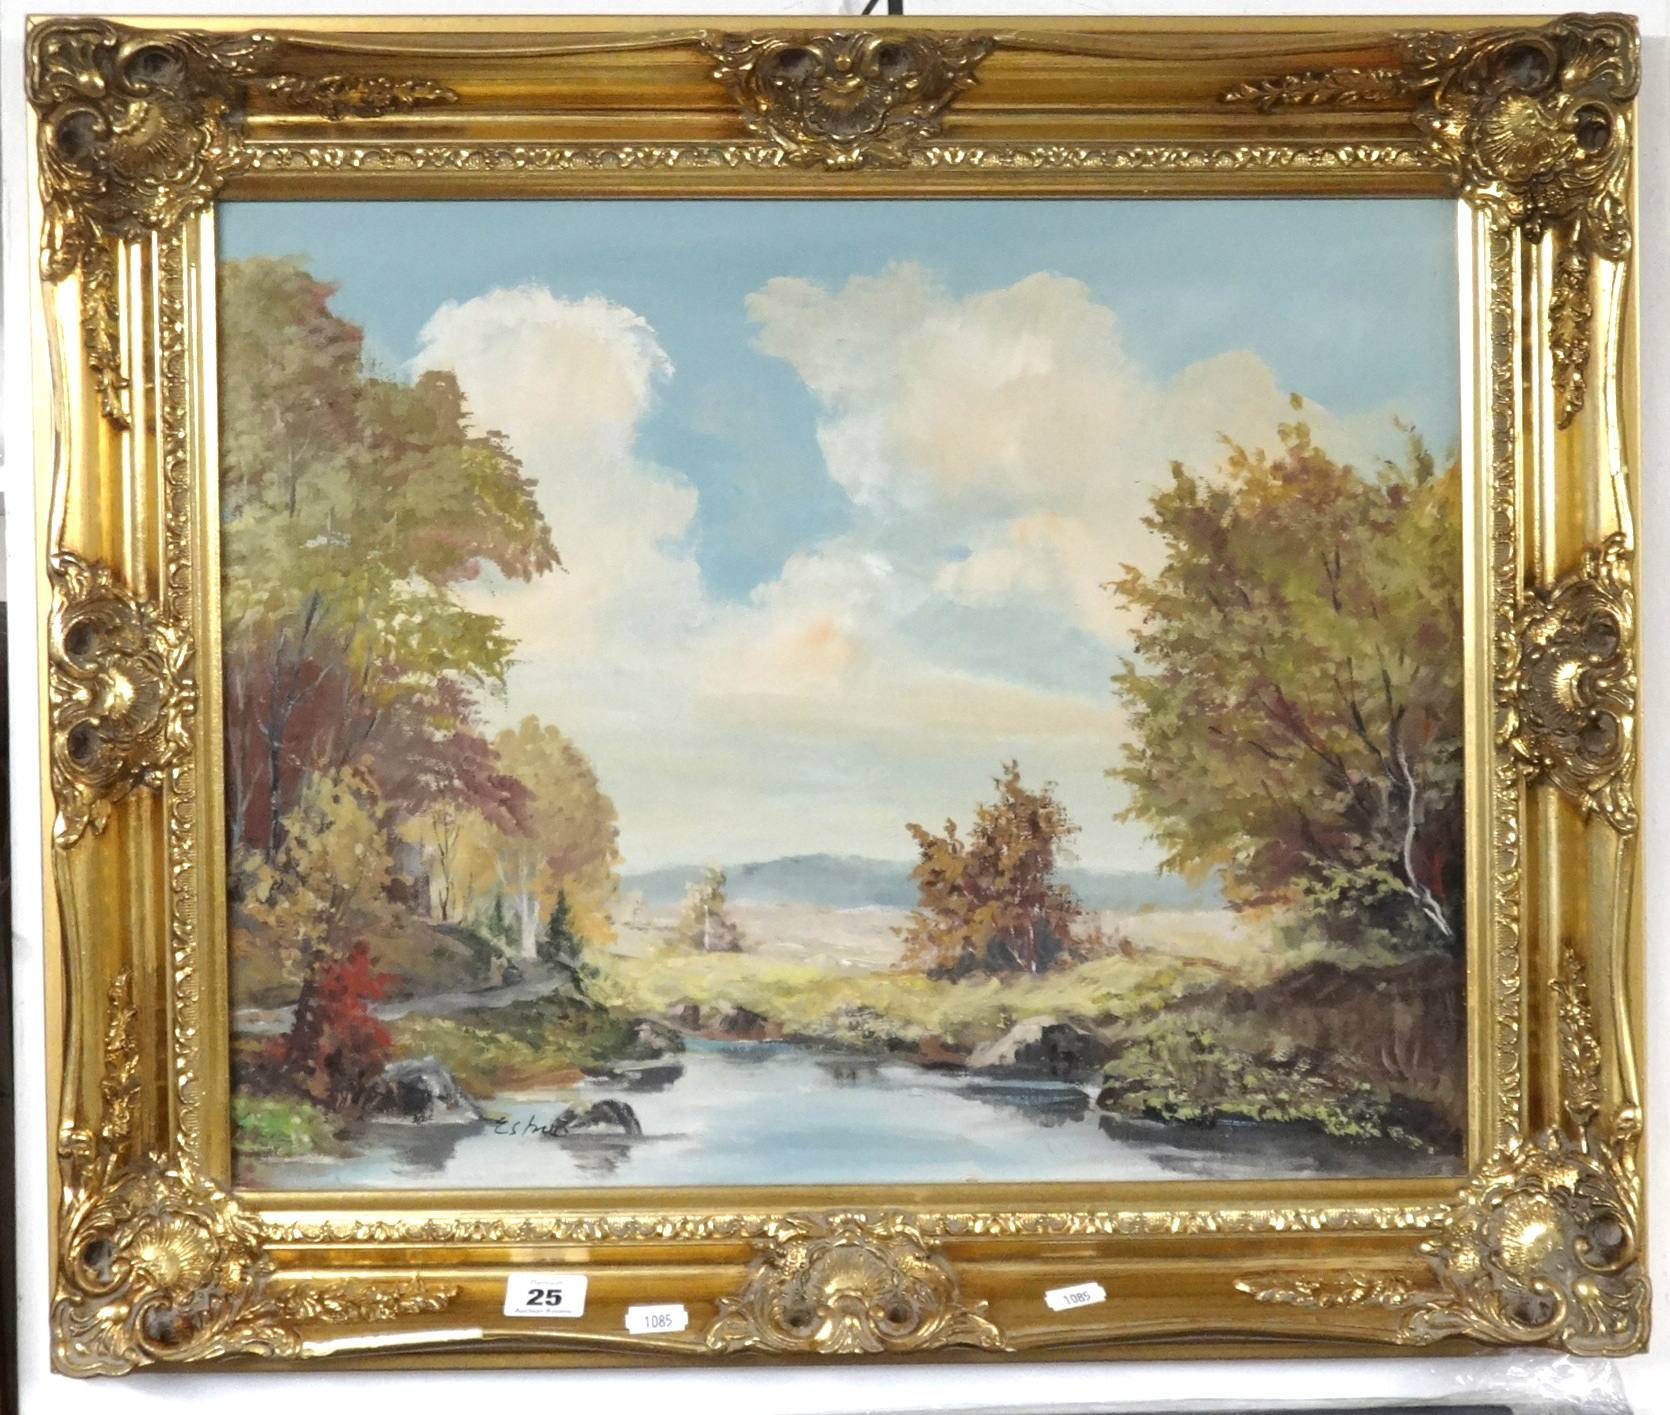 Lot 025 - A signed 20th century oil on canvas, river landscape in ornate gilt frame, 40cm x 52cm.